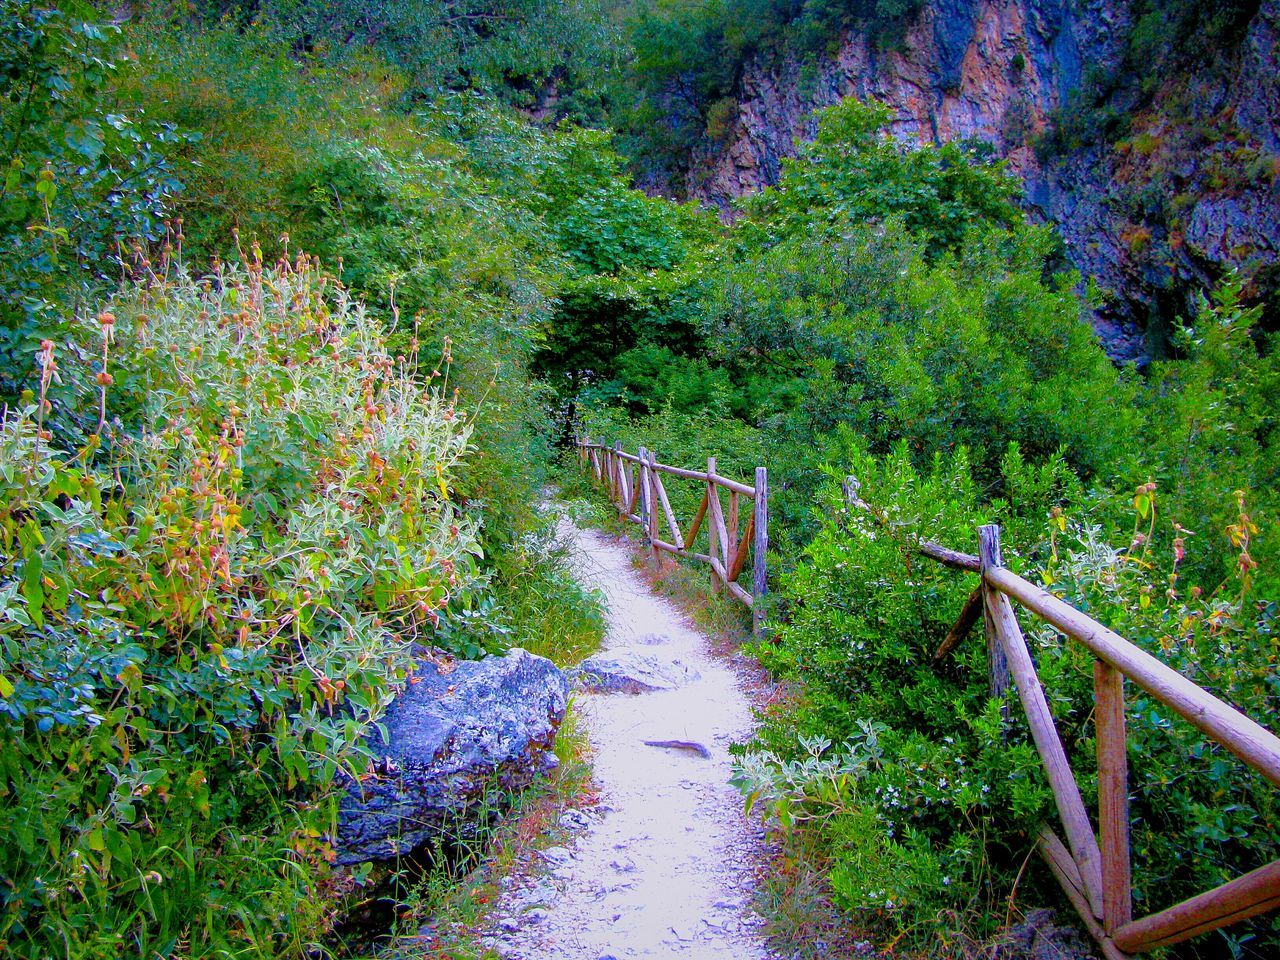 Feel The Journey Path Pathway Path In Nature Going The Distance Hiking Forest Forestwalk Forest Path Evening Walk Greenery Trees Paths Pathways Lefkada Island Greek Islands The Great Outdoors - 2016 EyeEm Awards Nature On The Way Rock Rock Formation Rock And Trees Shades Of Green  Share Your Adventure Live For The Story The Great Outdoors - 2017 EyeEm Awards